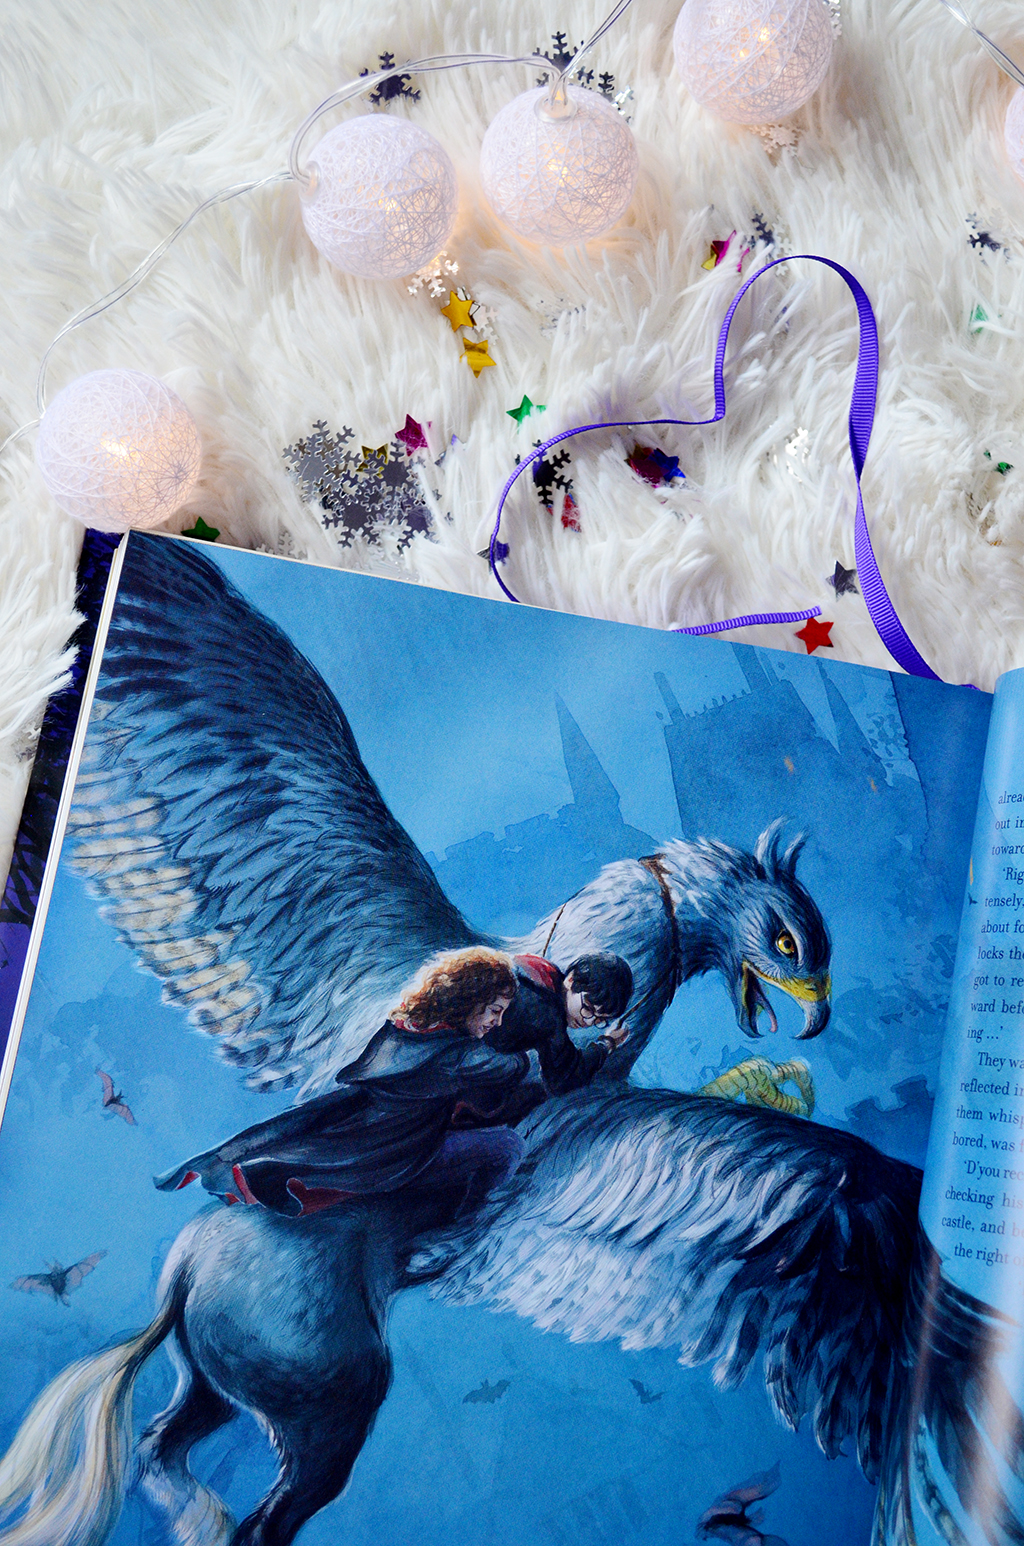 book review recenzie carte harry potter prisoner azkaban illustrated edition bloomsbury